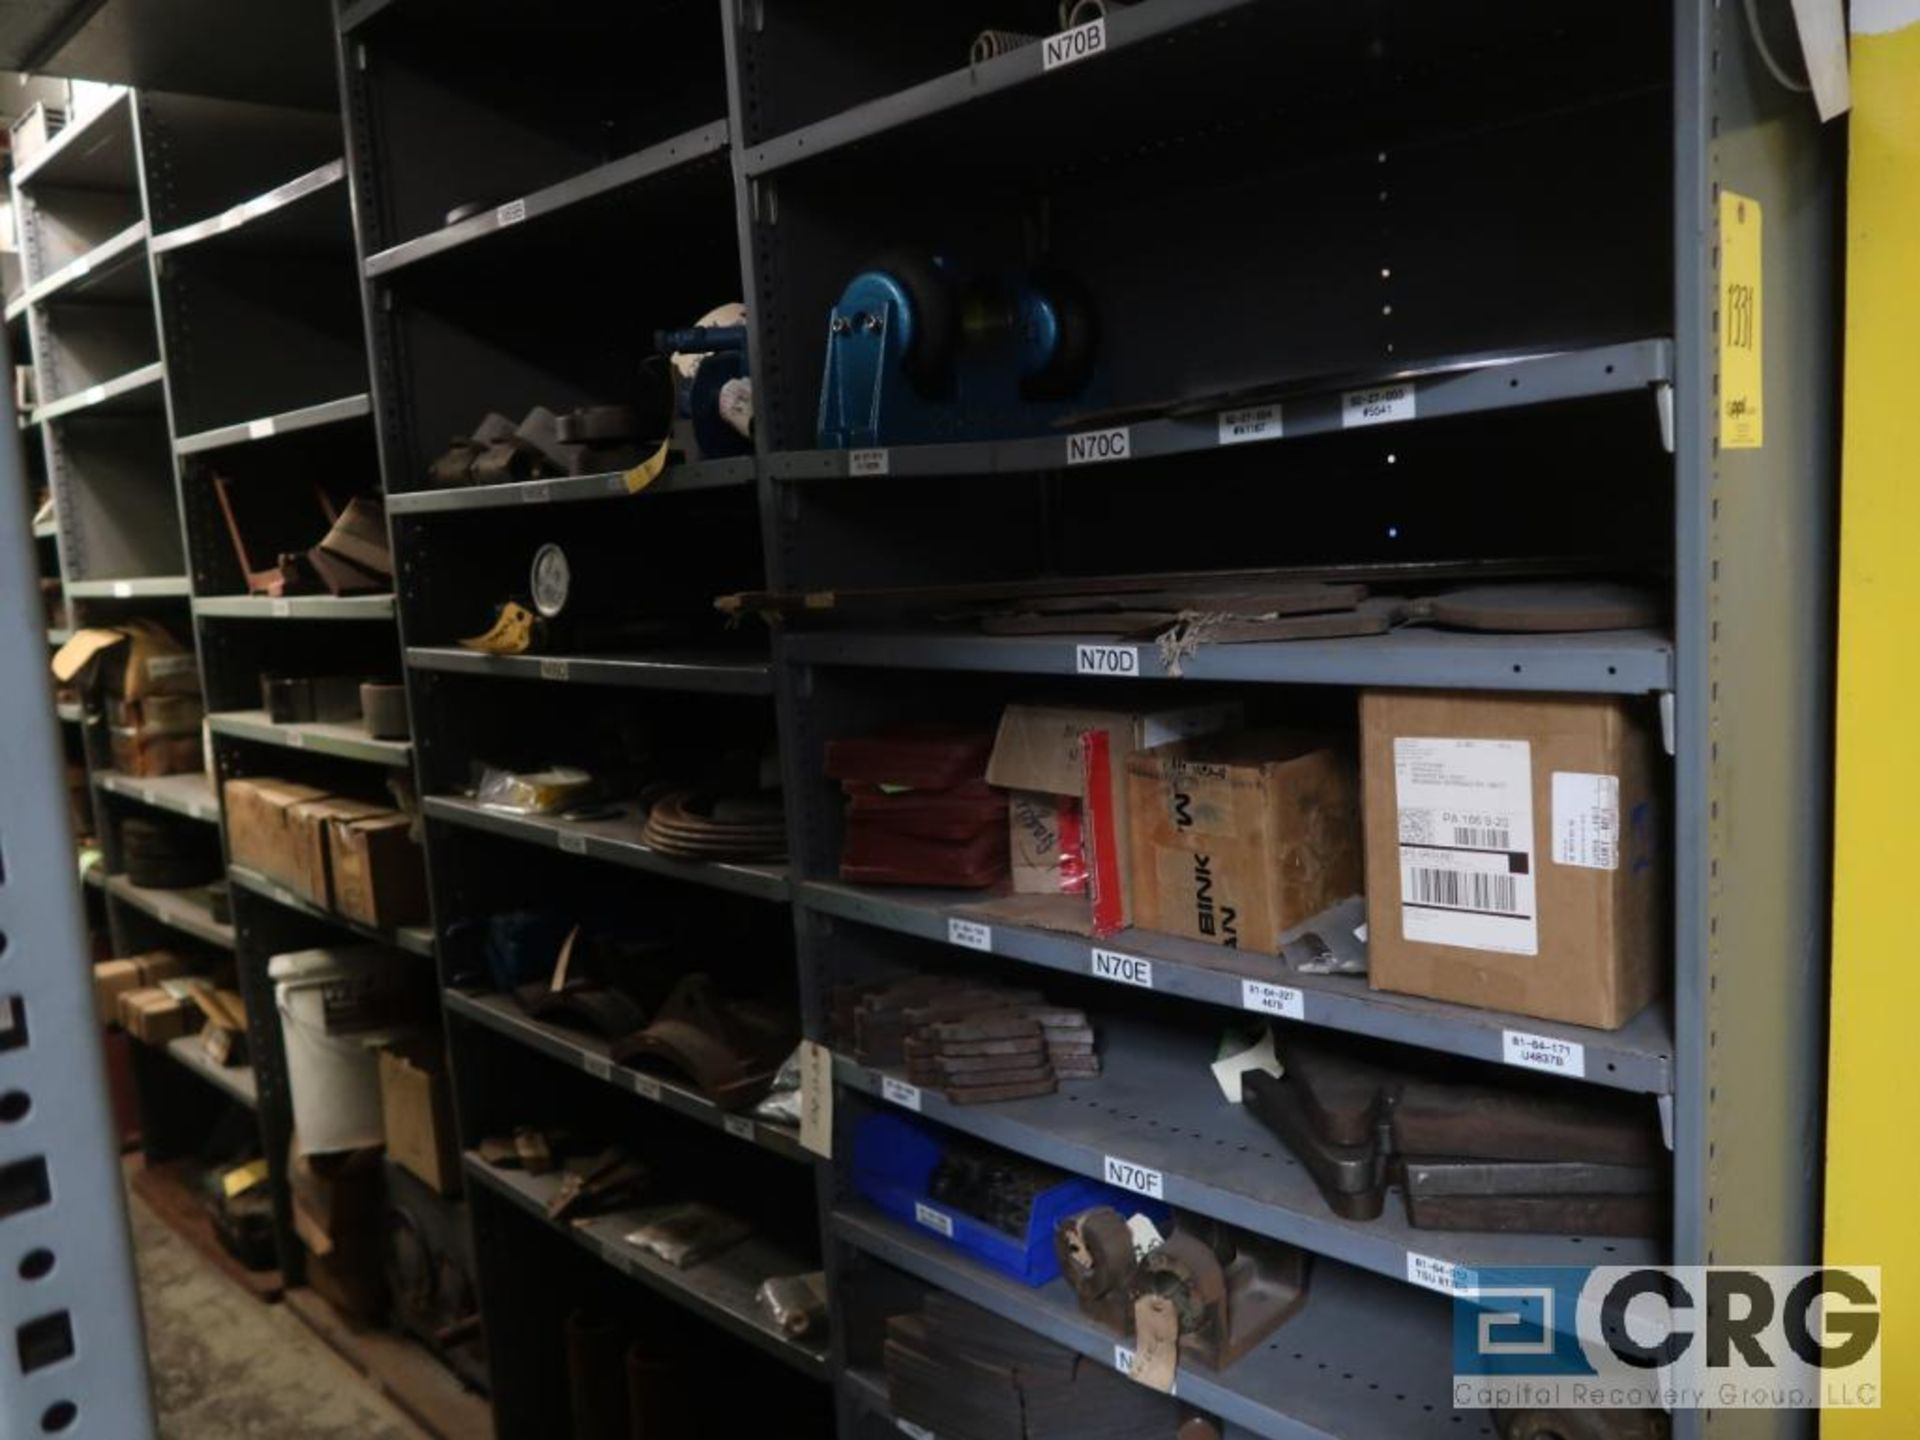 Lot of (35) sections with assorted parts including gaskets, fittings, shaft pins, gears, and - Image 13 of 17